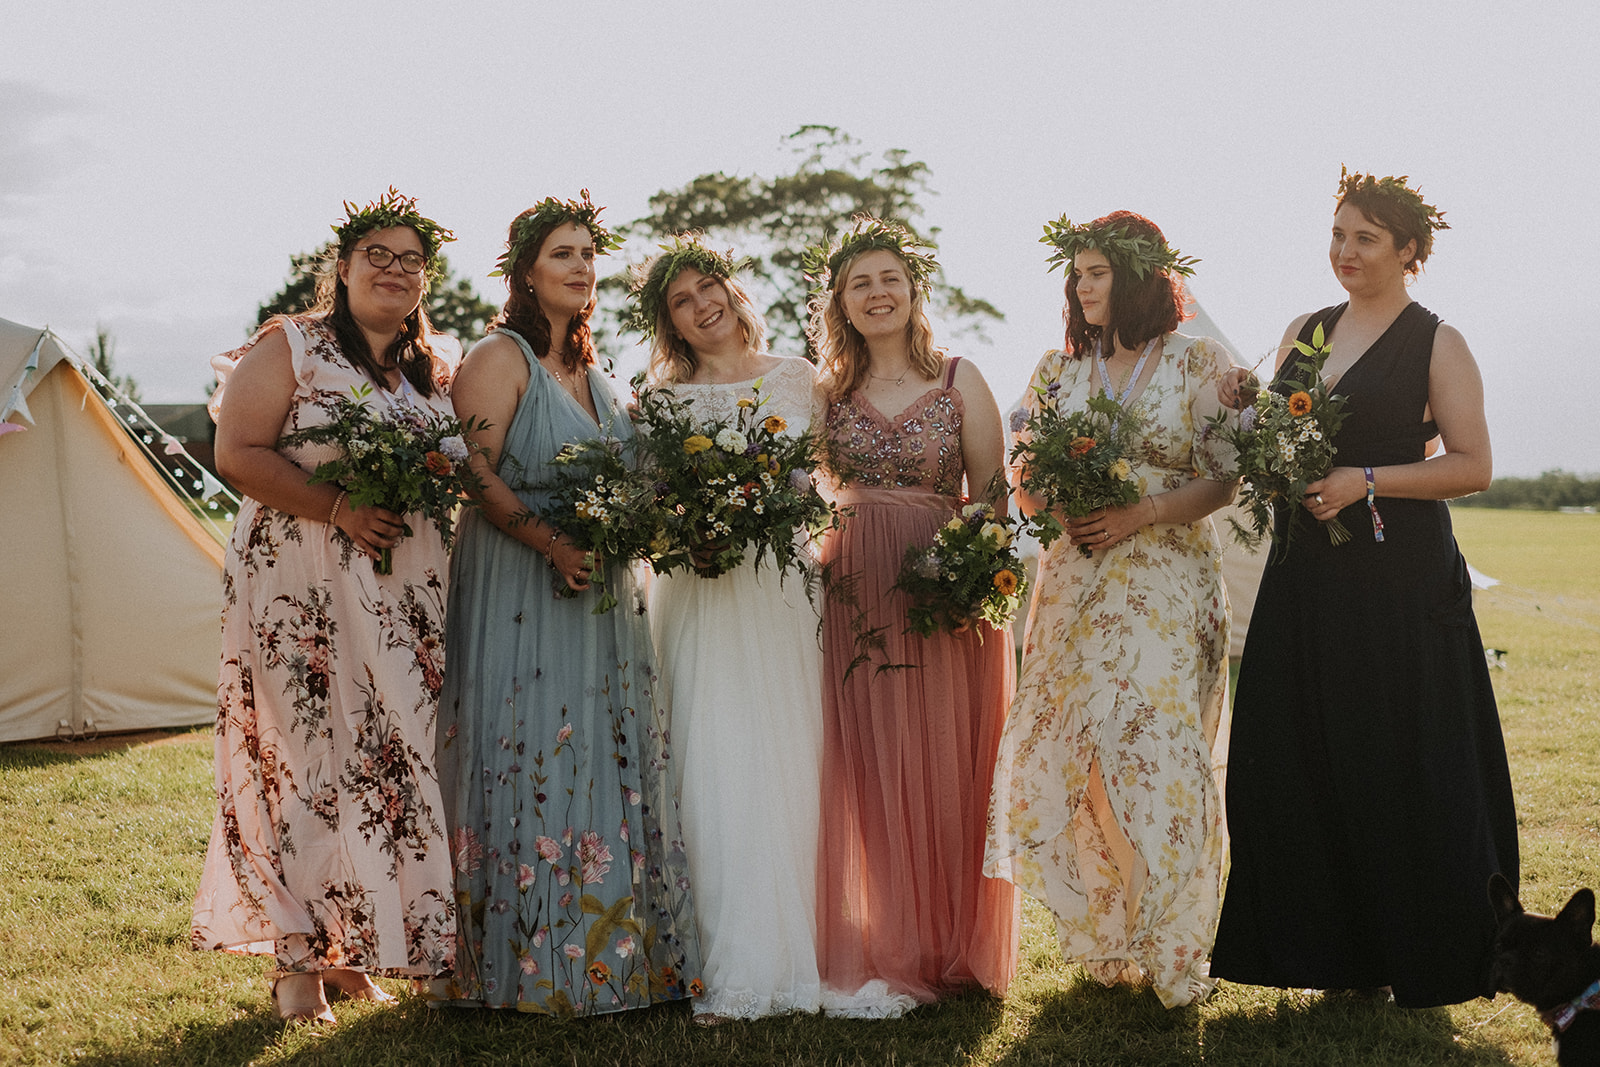 Bride and bridesmaids wearing all different dresses for cattows farm wedding